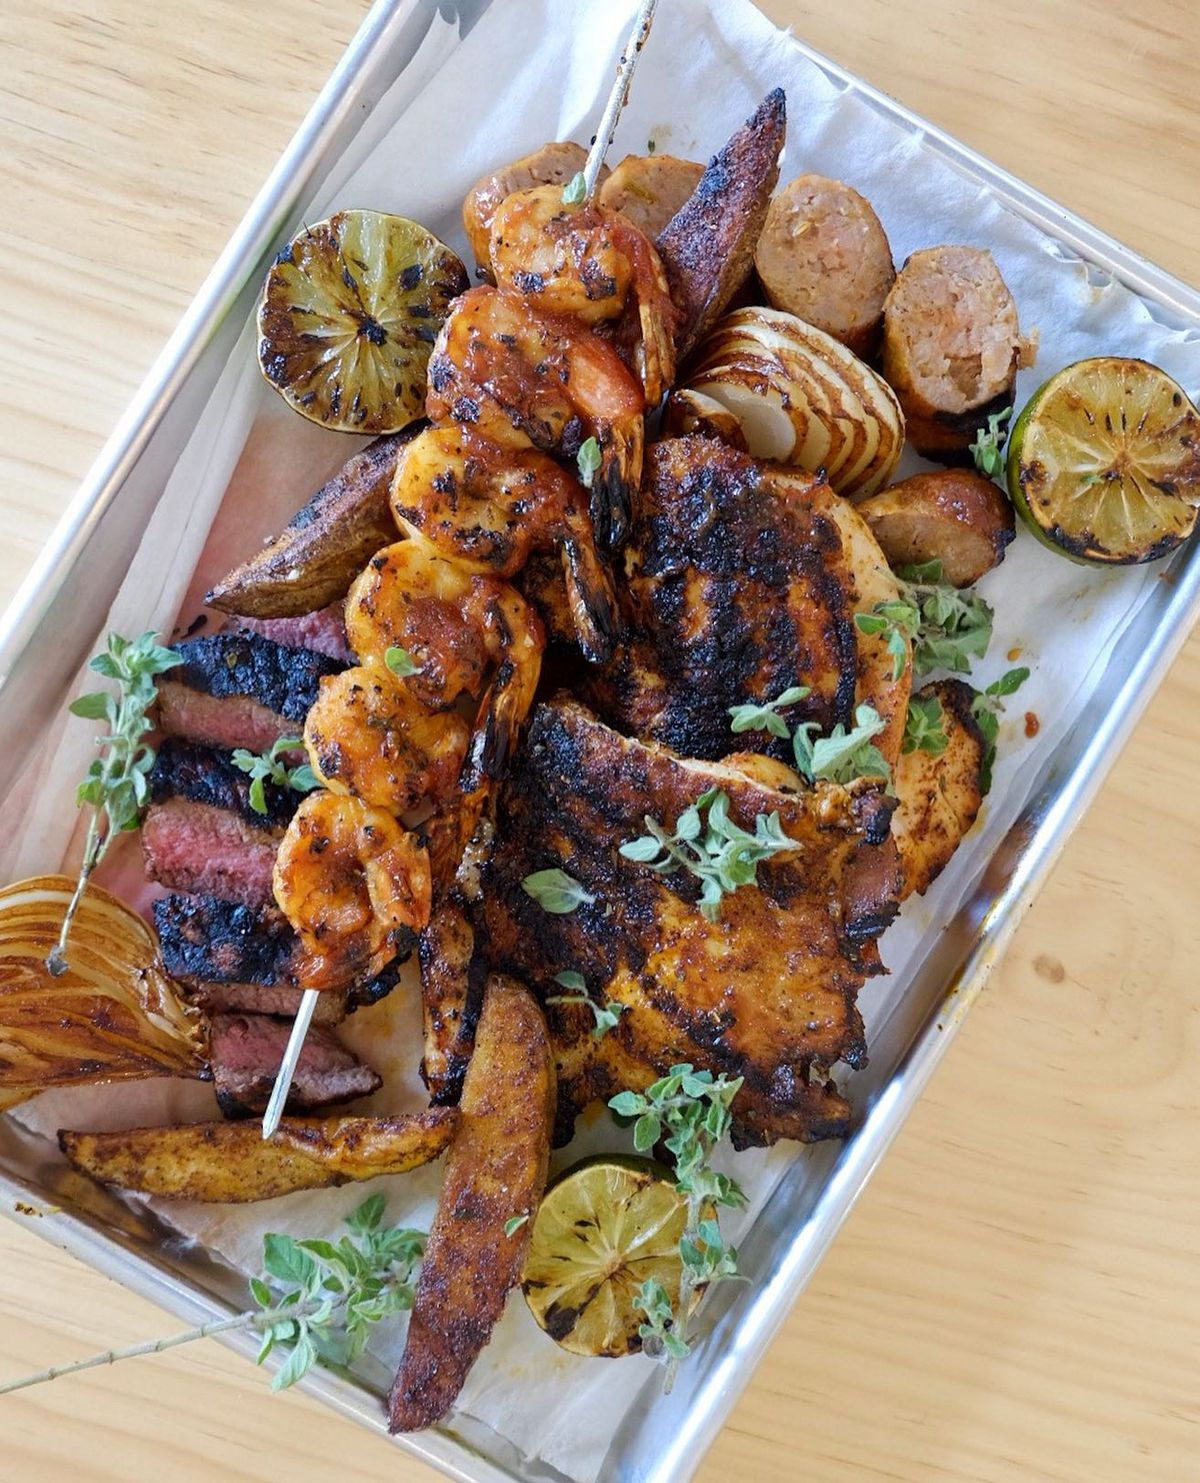 A half grilled and brined chicken and steak with BBQ shrimp skewers and potato wedges and grilled half onions on a silver serving tray